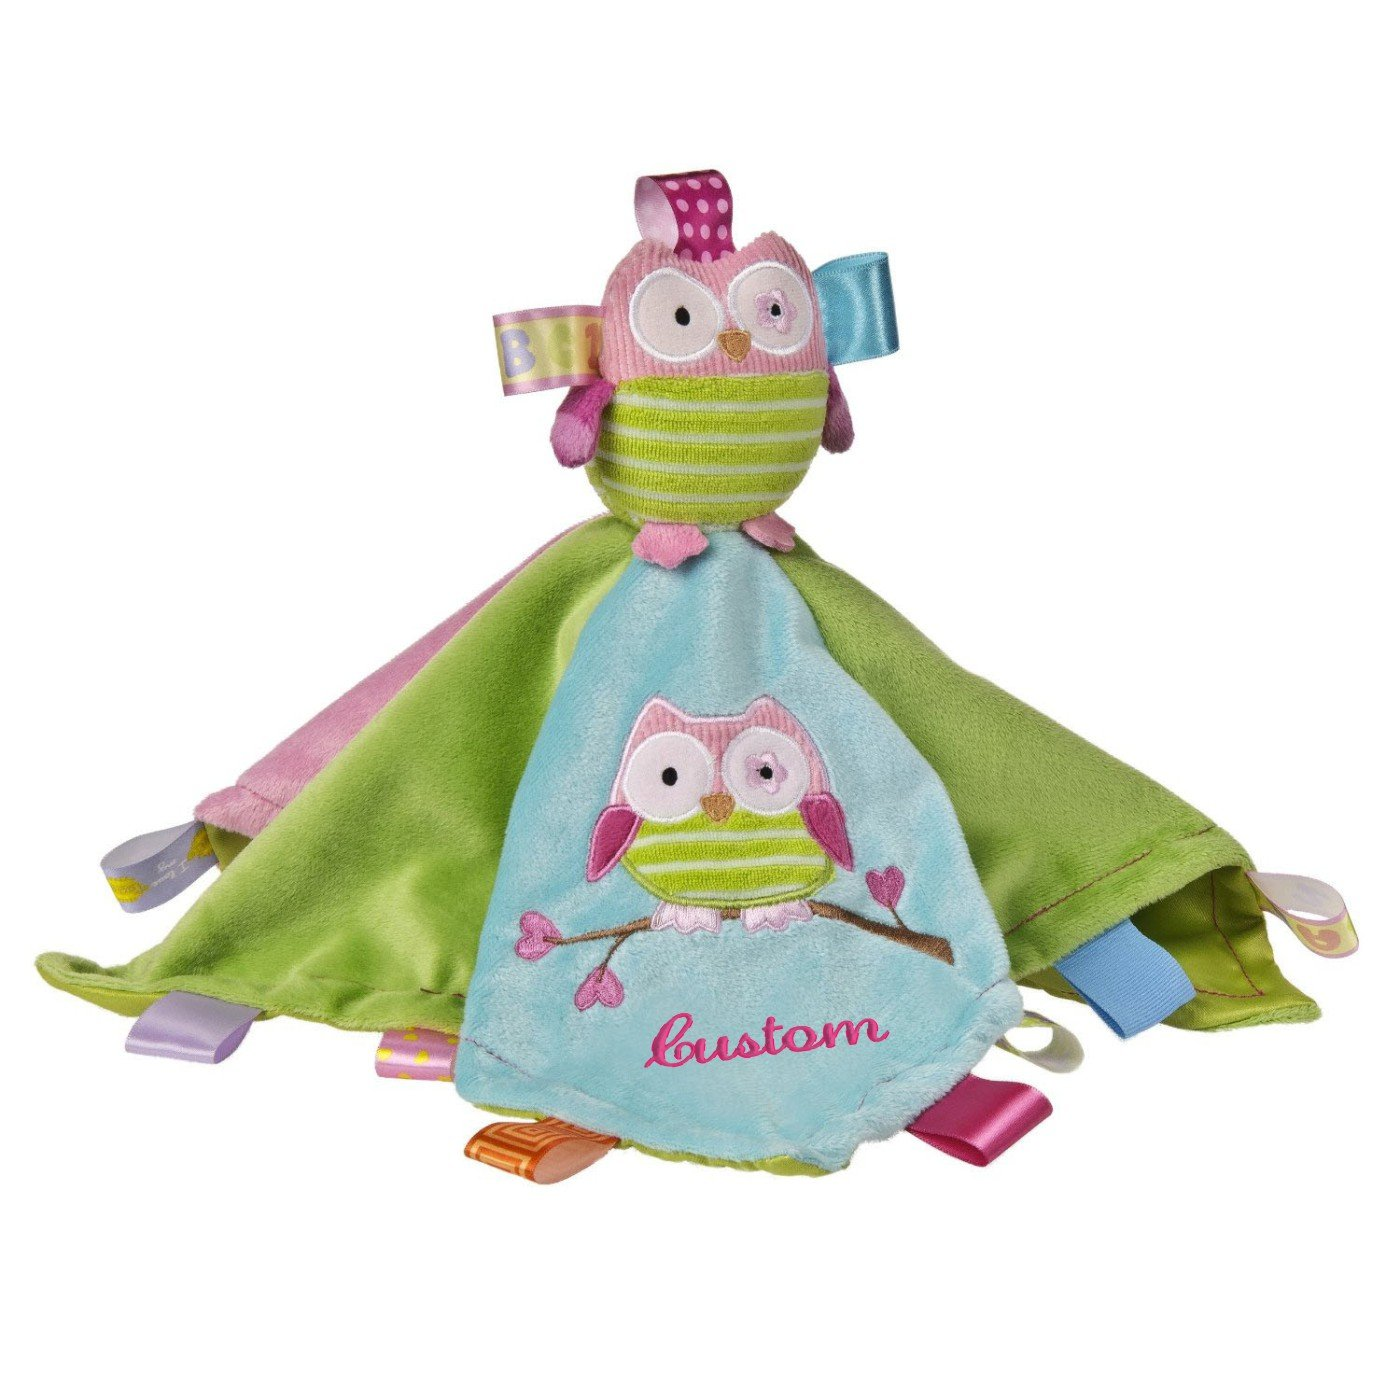 Personalized Taggies Oodles Owl Character Blanket - 13.5 Inch - Pink Embroidery, CUSTOM